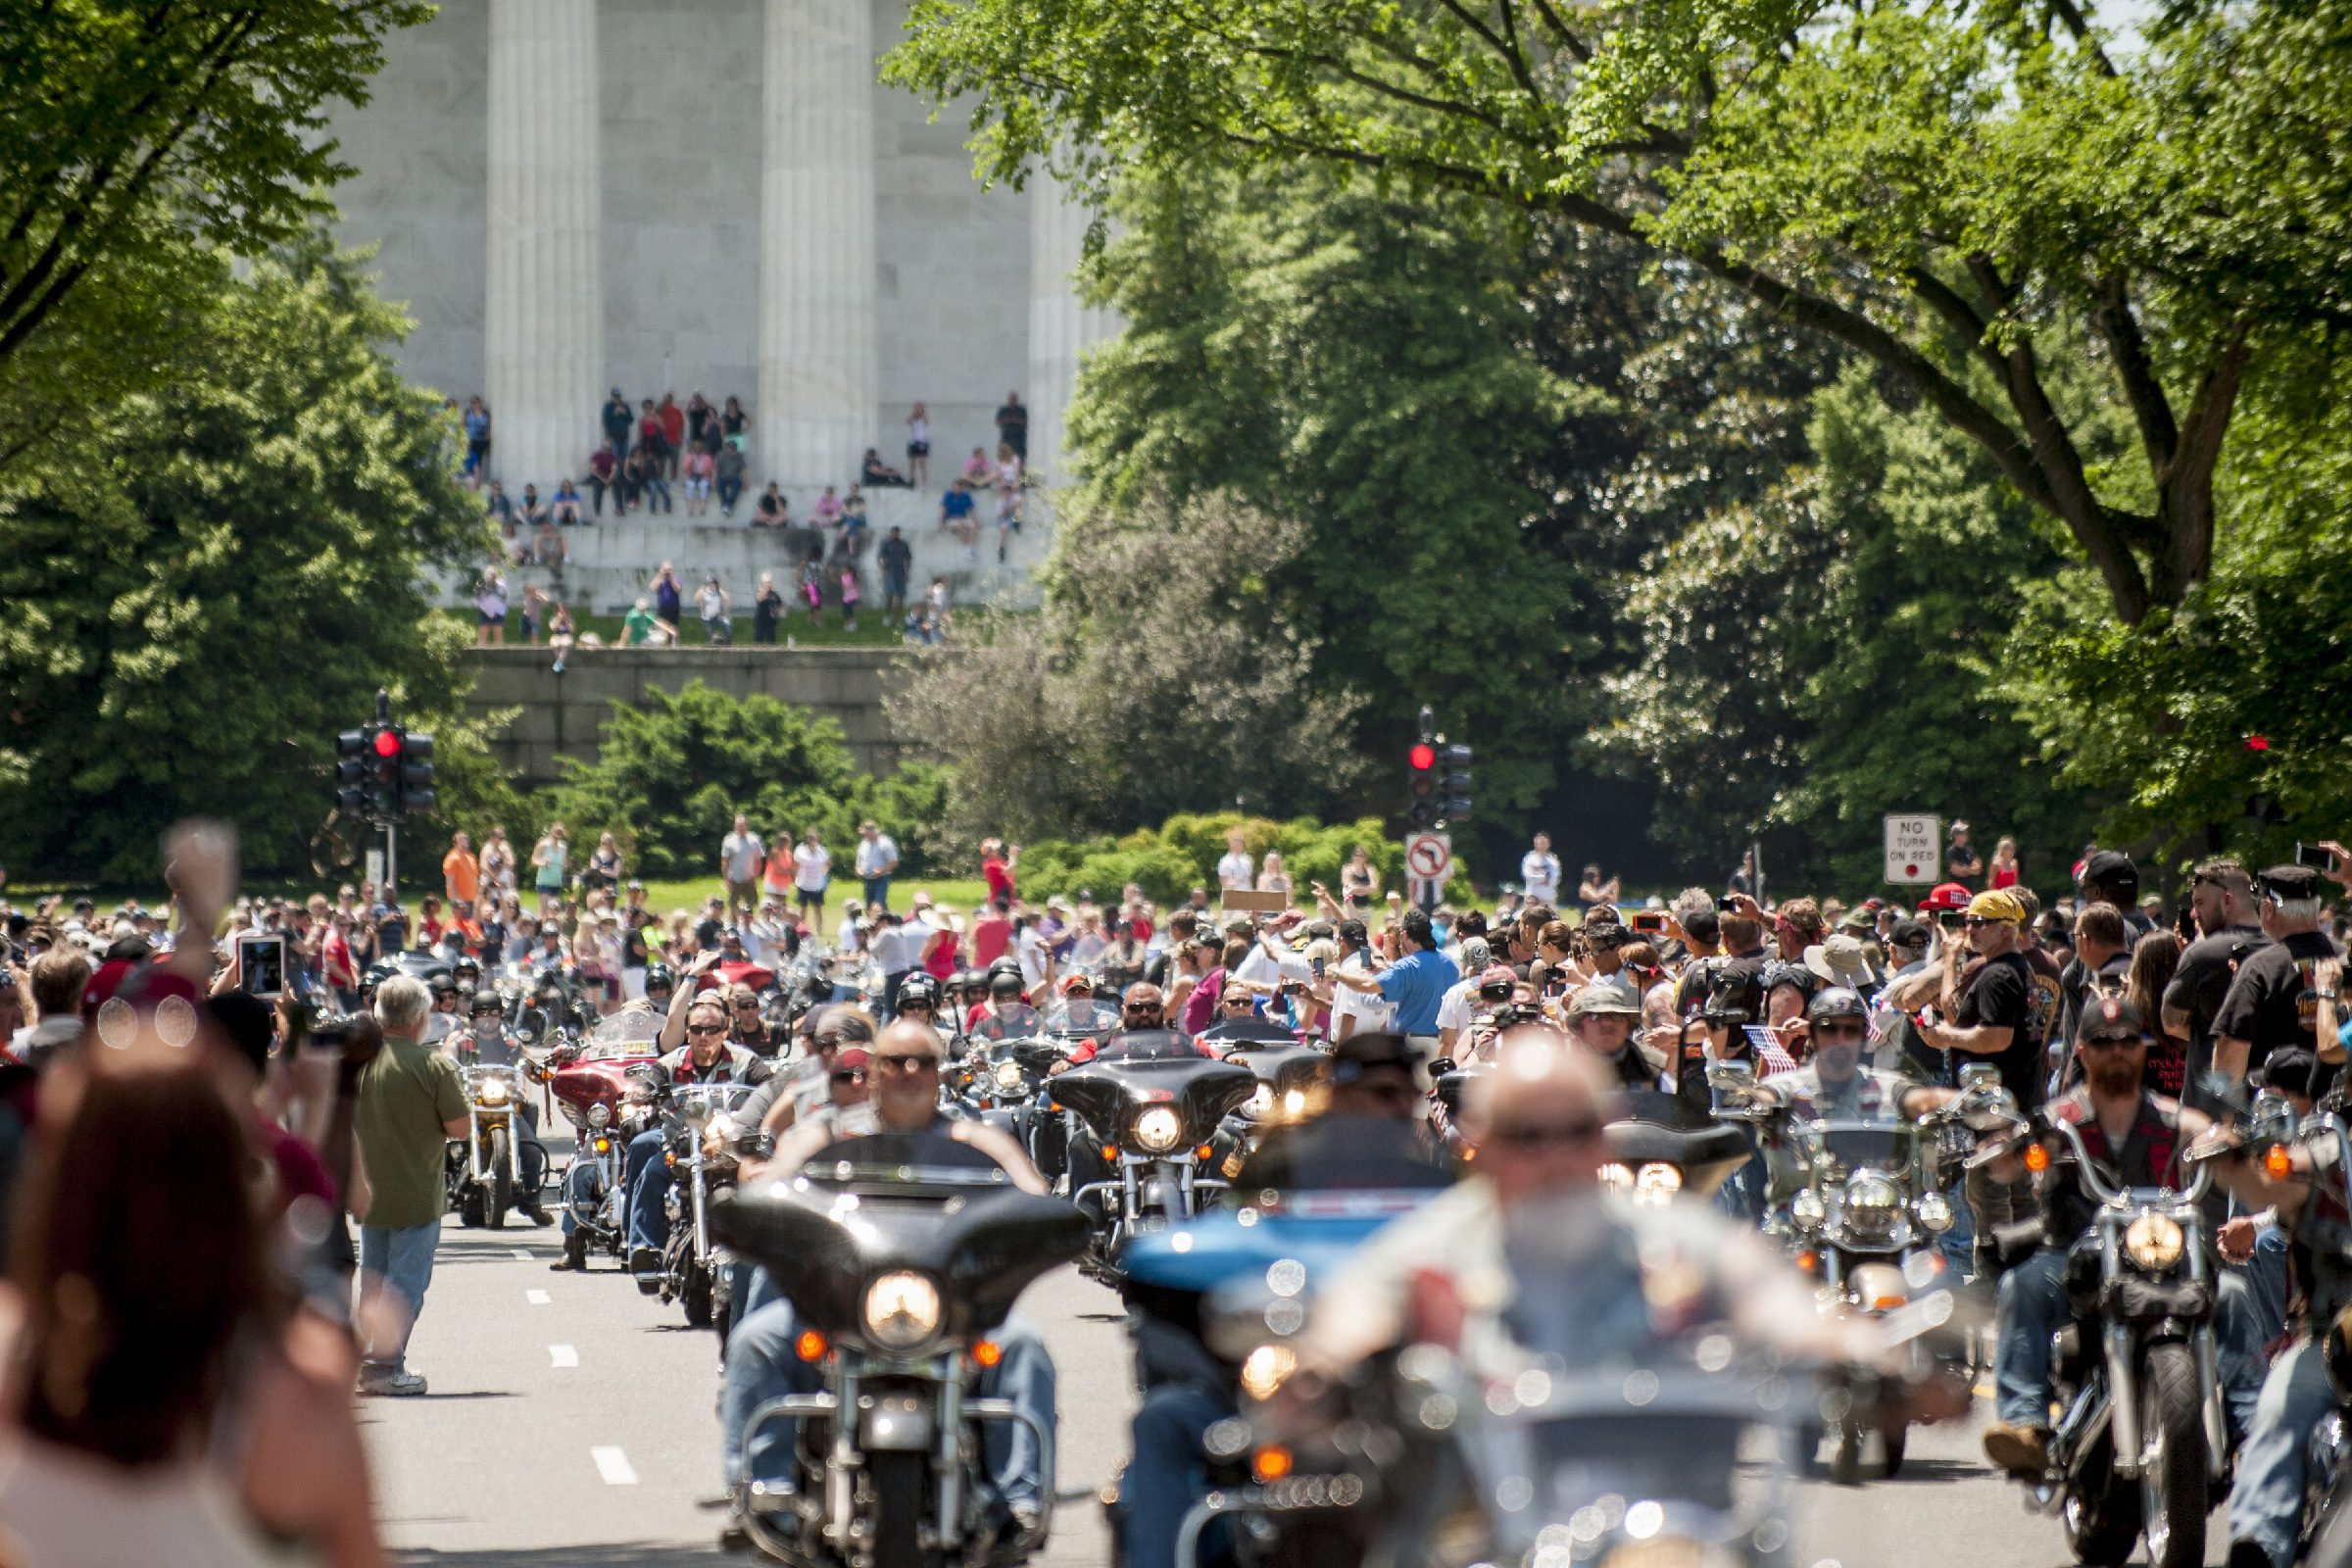 Riders Pass Through the Streets of As Spectators Look on During the Rolling Thunder Xxviii First Amendment Demonstration Run in Washington Dc Usa 24 May 2015 the Annual Gathering First Started in 1988 the Riders who Come From Around the United States and Other Countries Rally at the Pentagon Parking and Then Ride Through the Spectator Lined Streets of Washington D C United States Washington